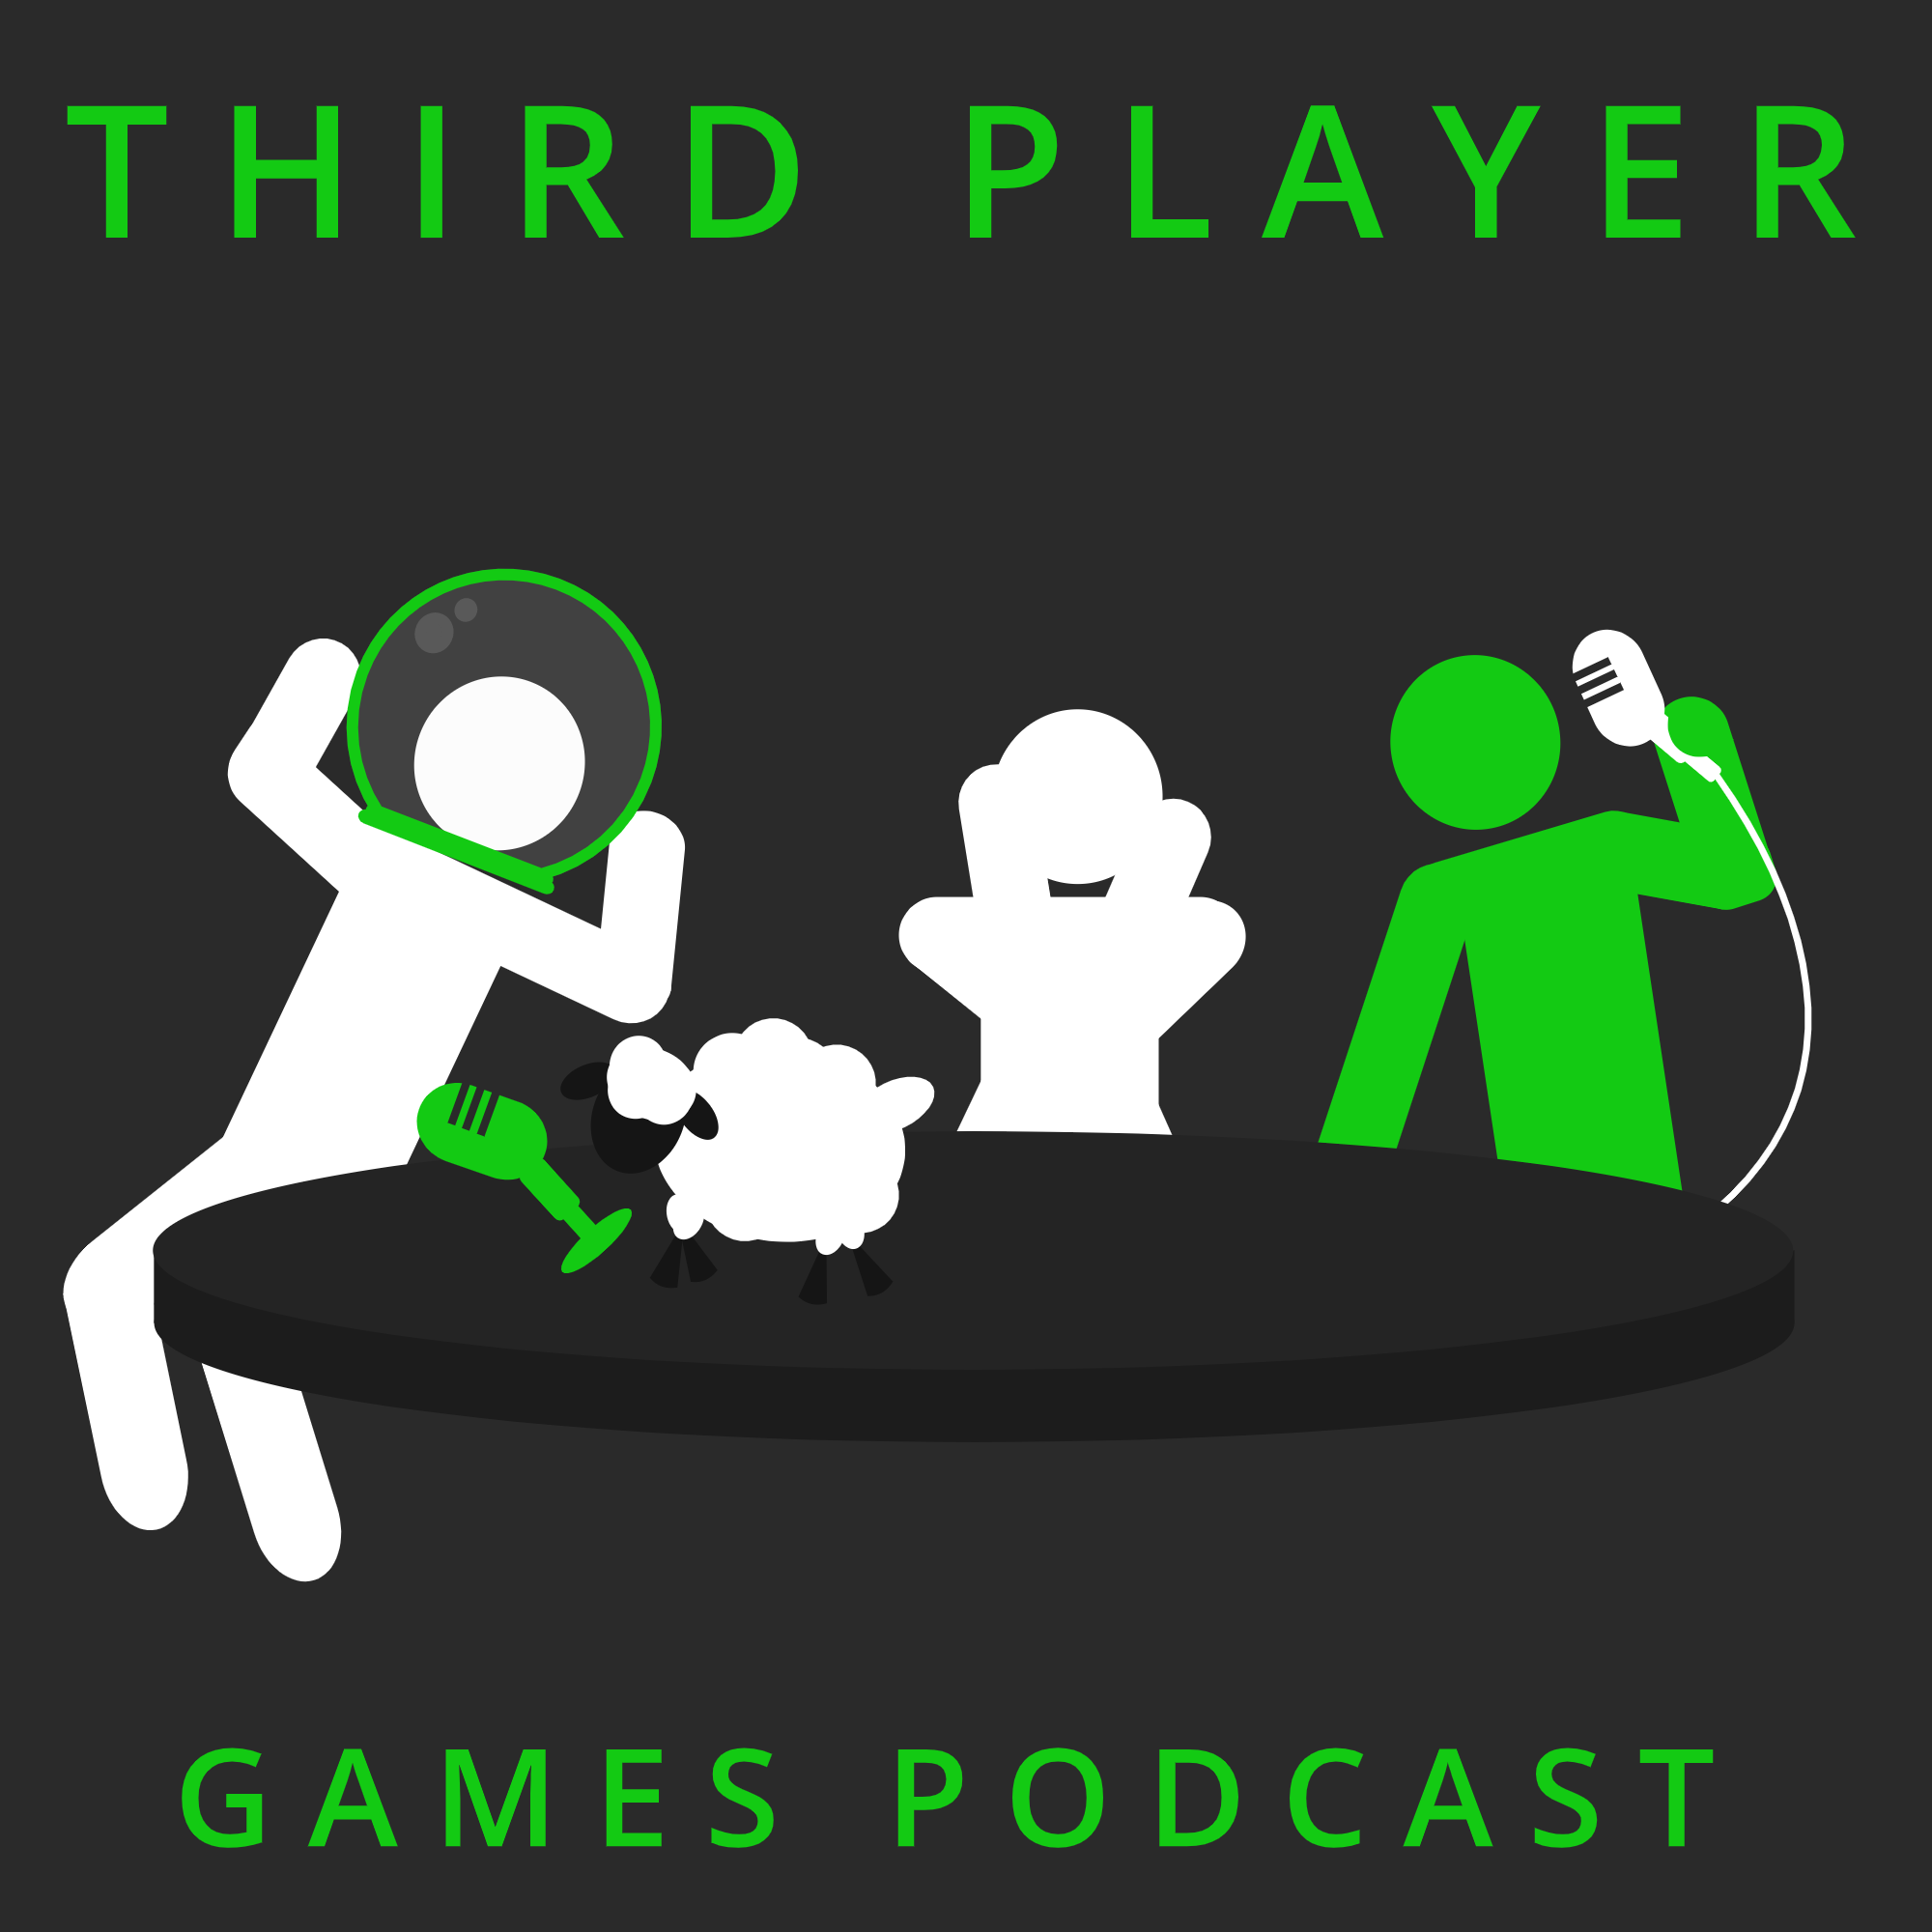 Third Player Games: A Video Game Podcast   Podbay